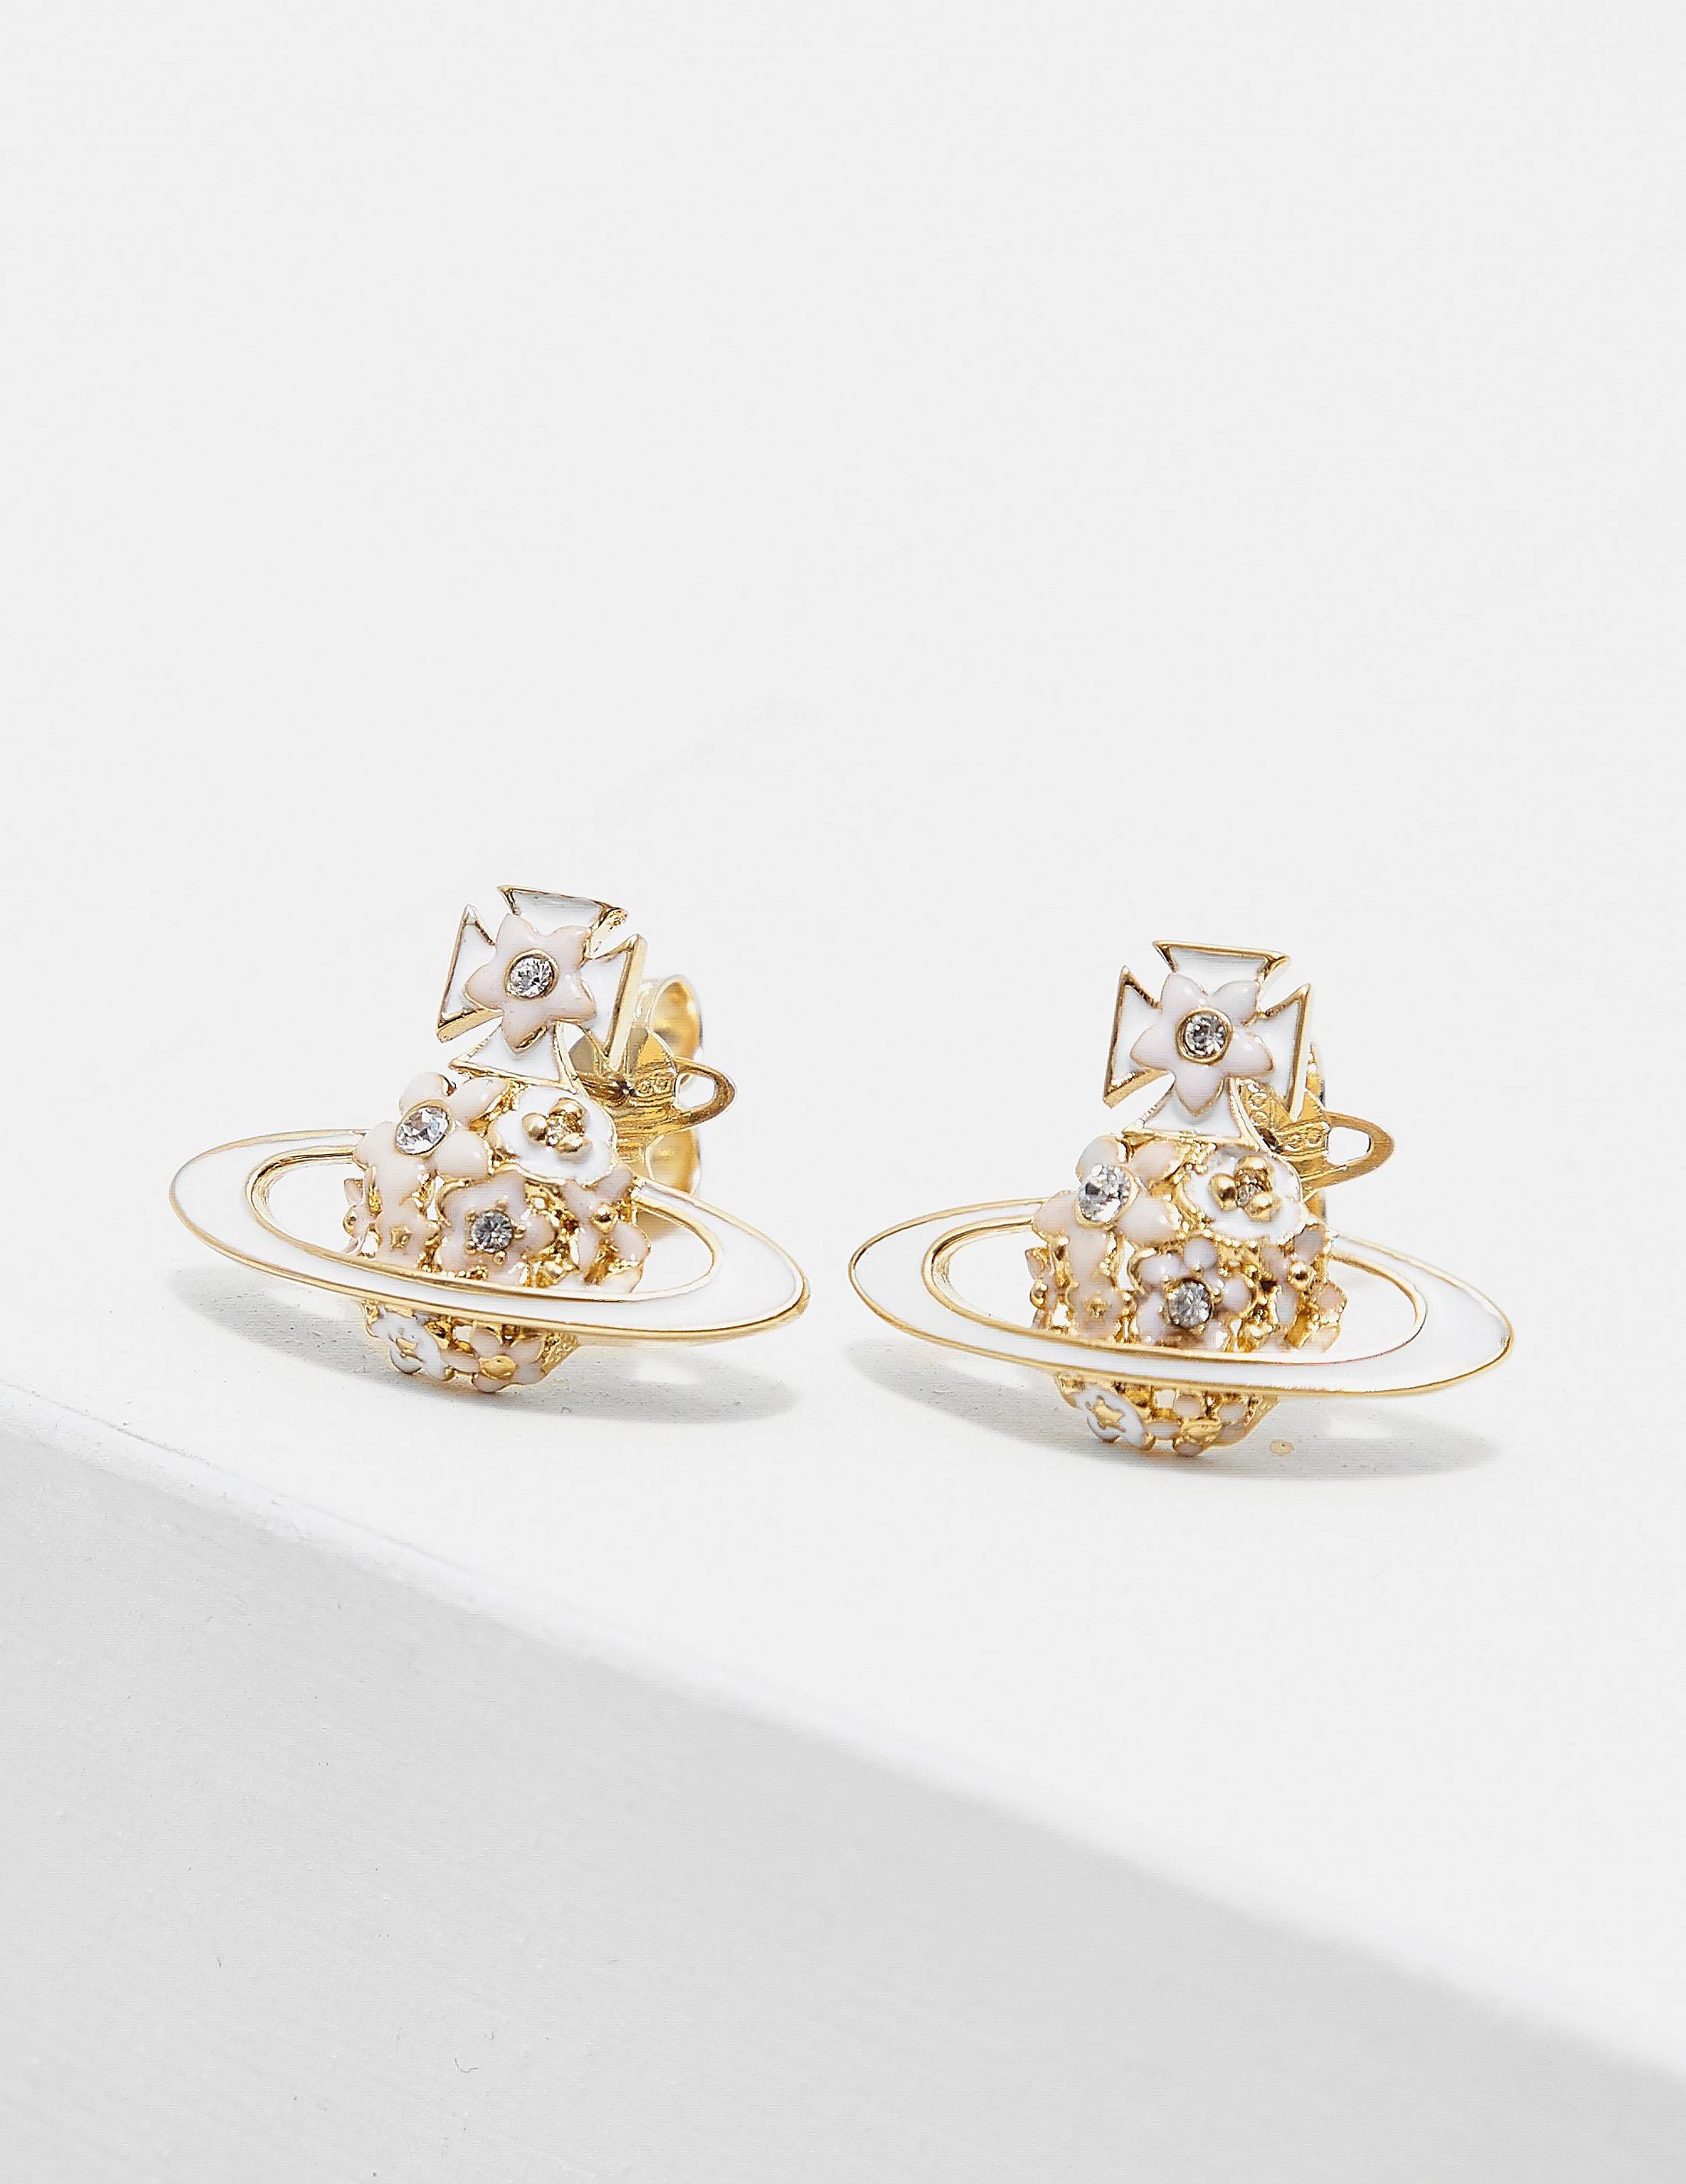 Vivienne Westwood Azalea Earrings